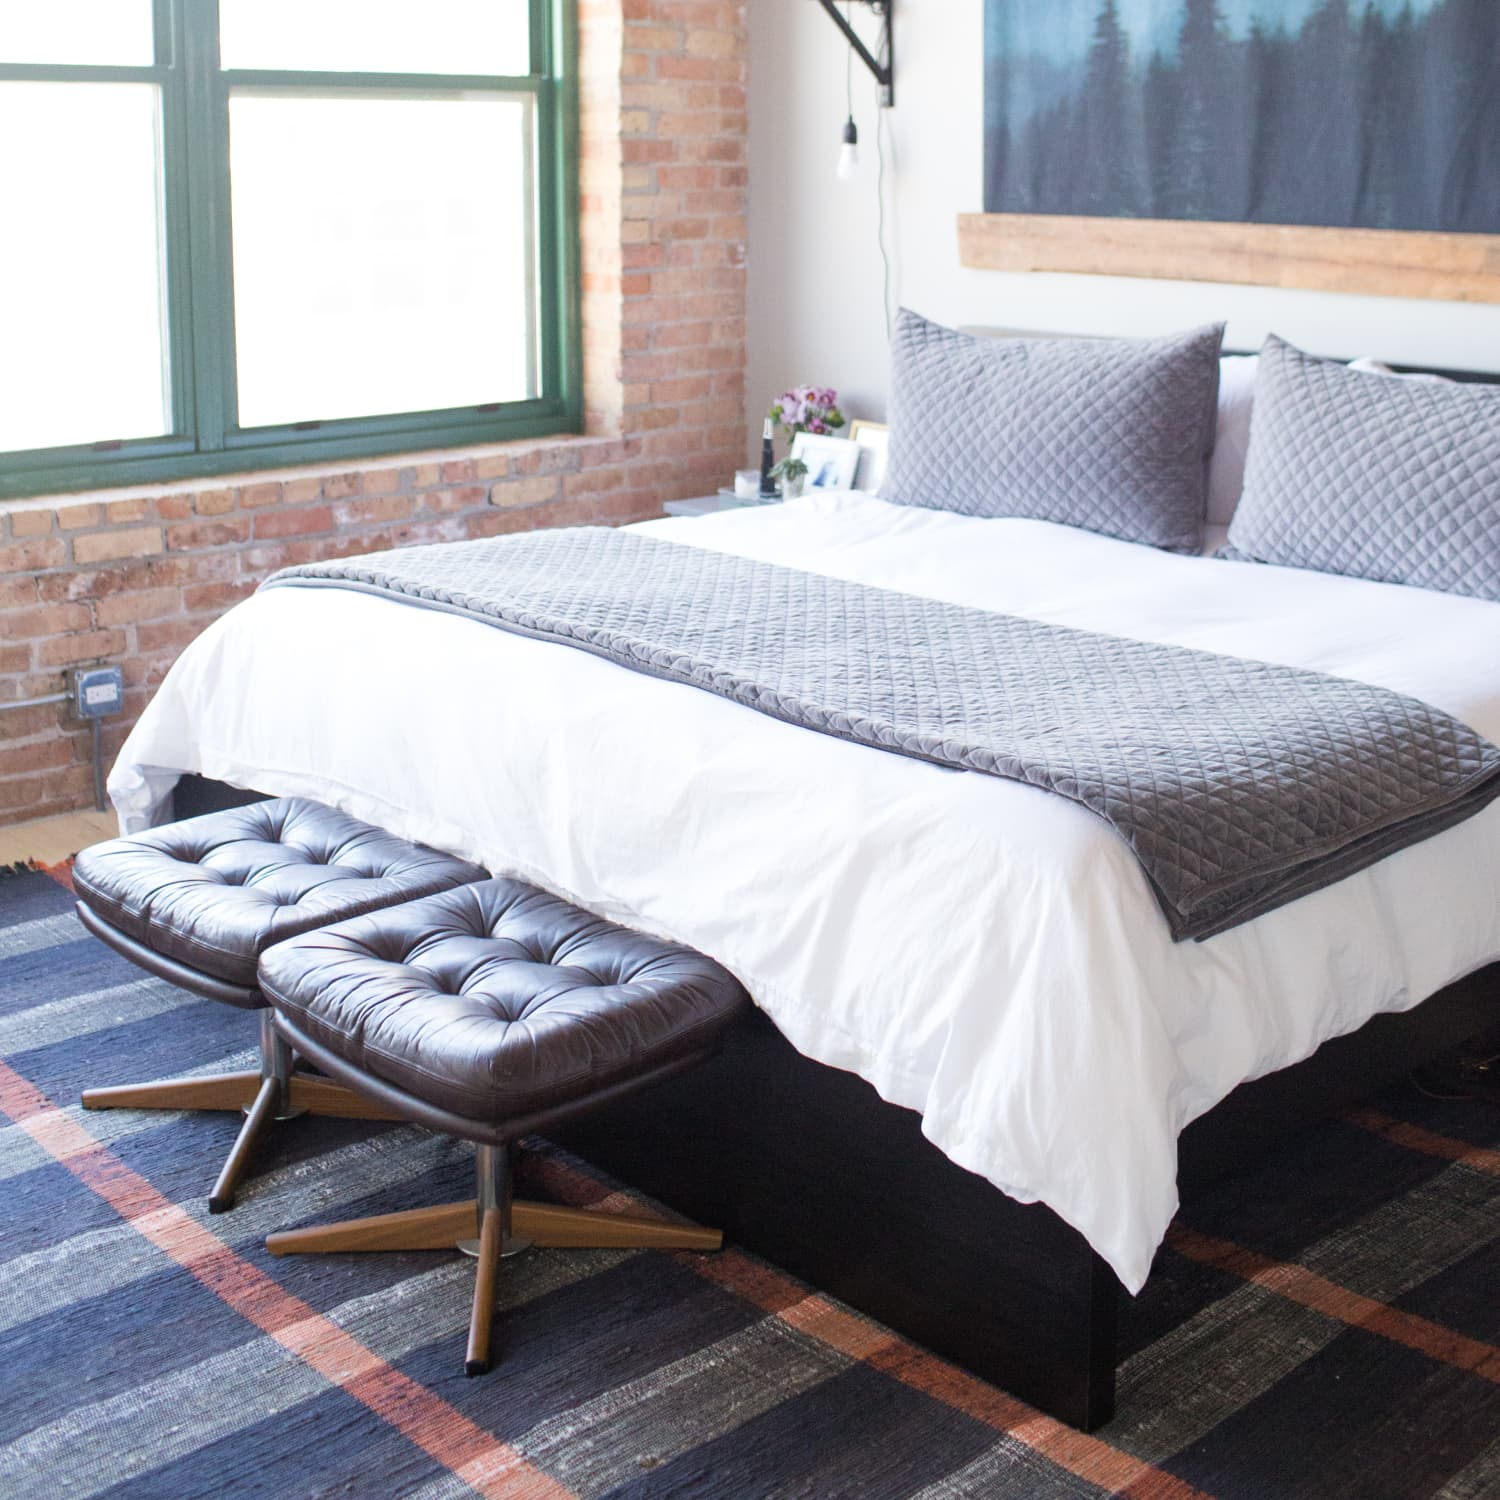 Bedroom DIY Ideas That Add Beauty for Less Than $15  Apartment